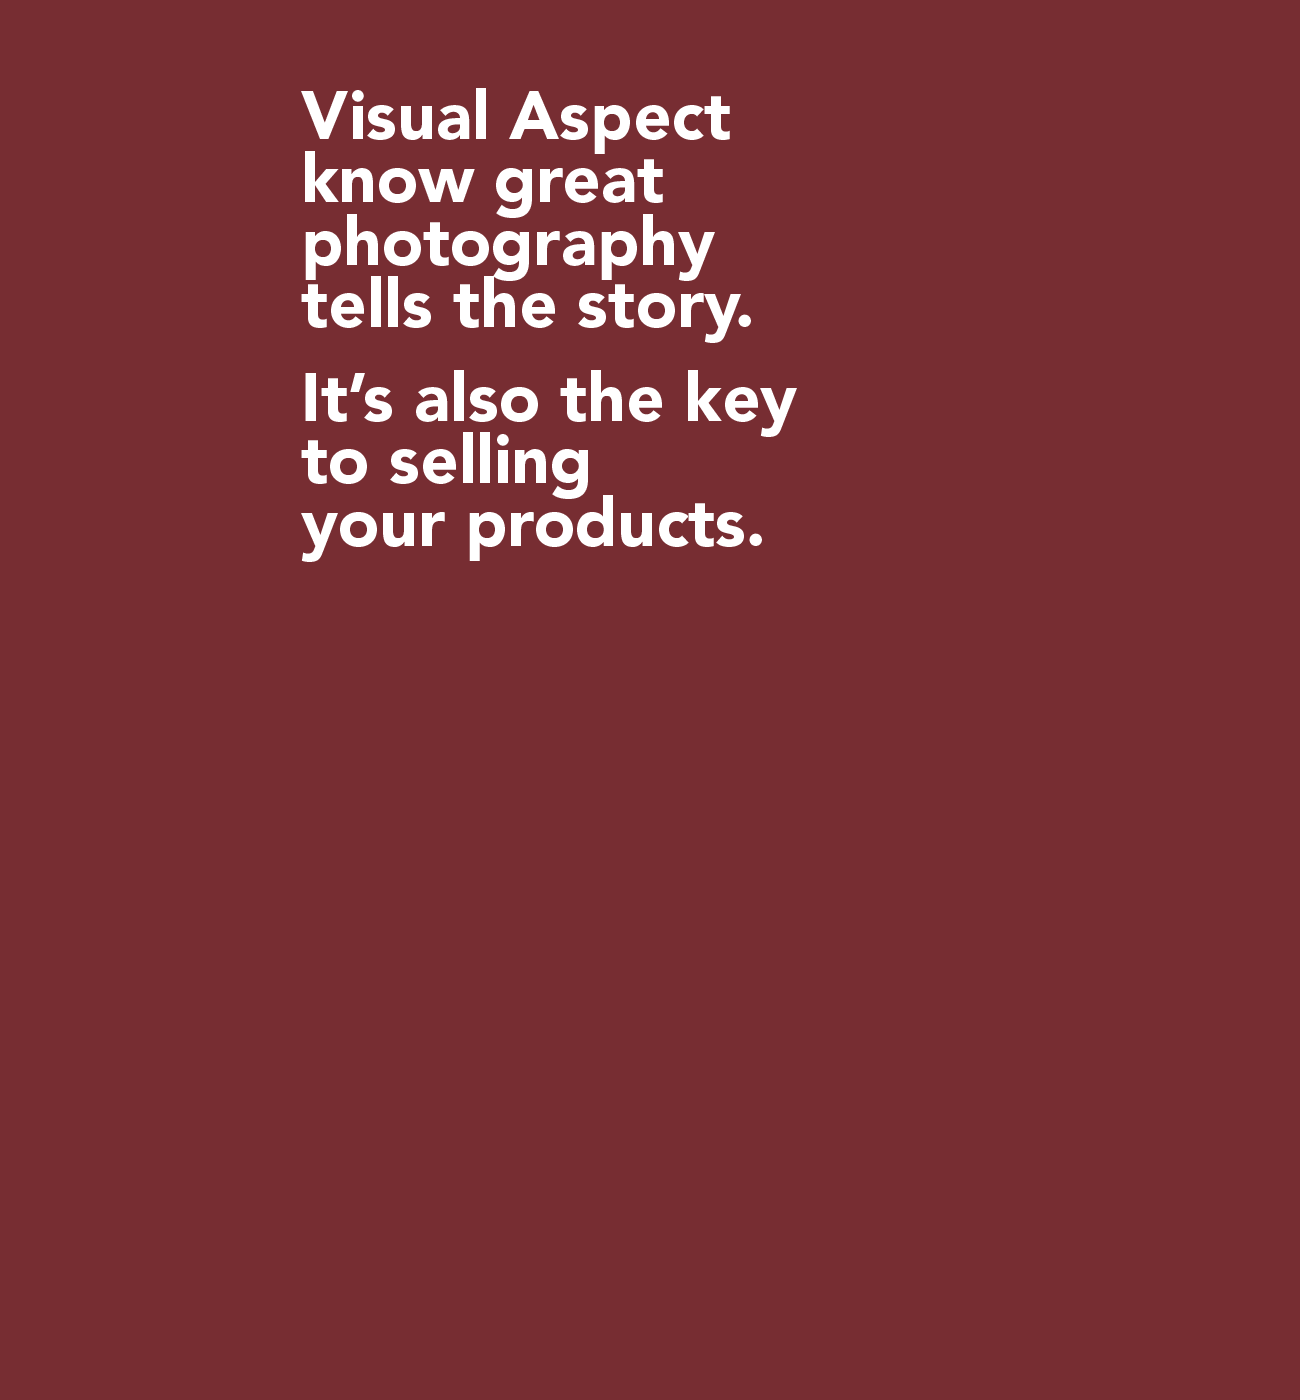 Visual Aspect eCommerce Photographers Glasgow